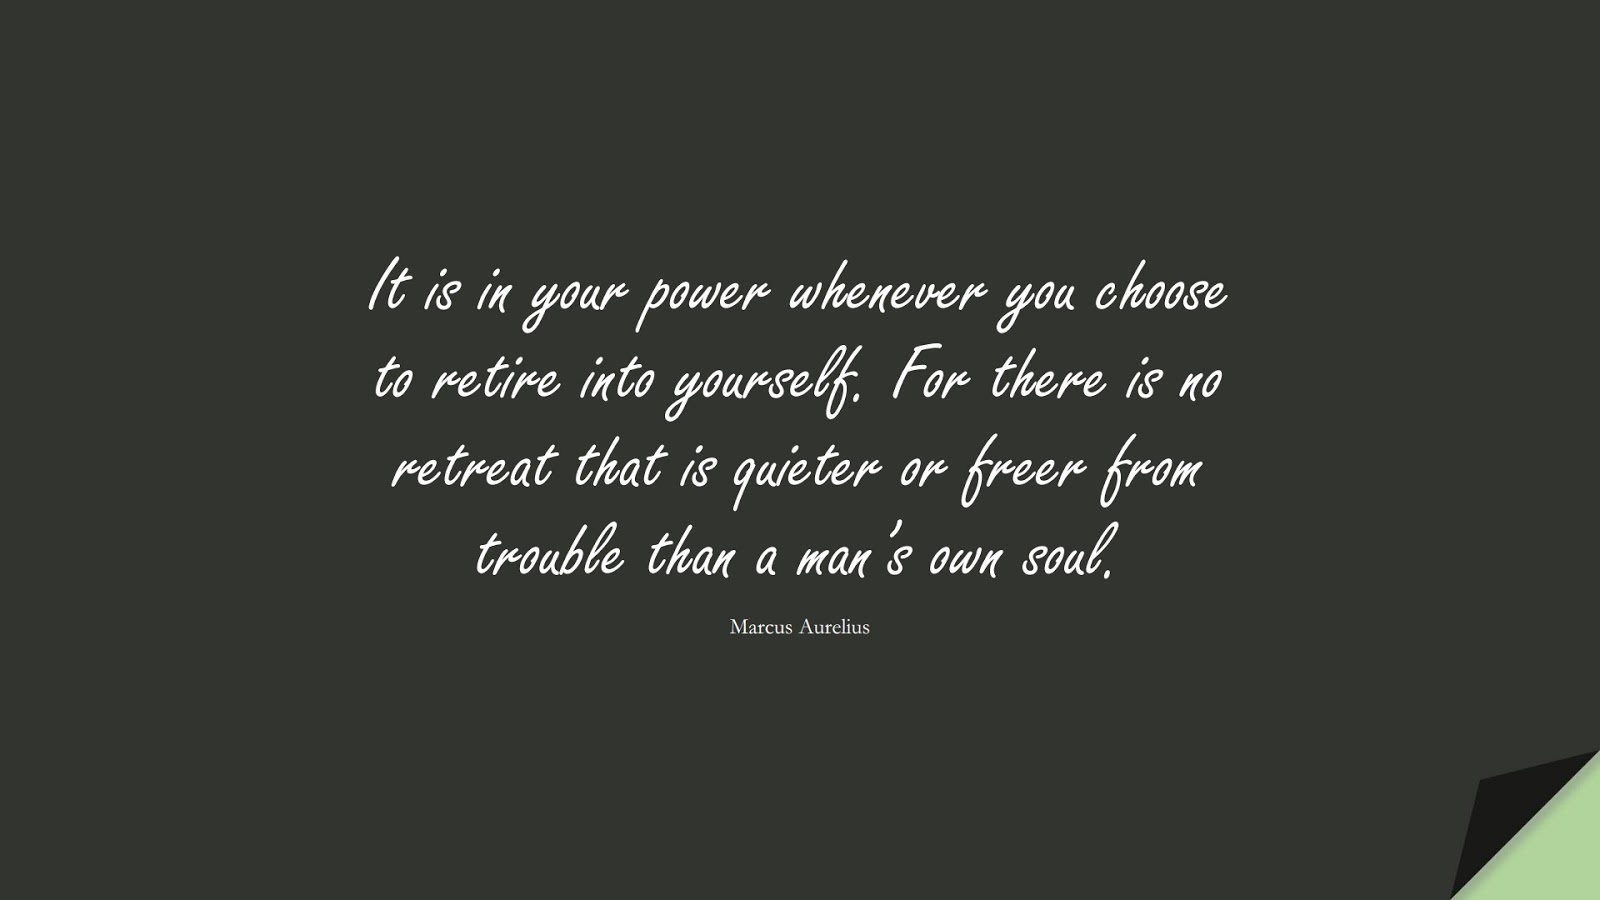 It is in your power whenever you choose to retire into yourself. For there is no retreat that is quieter or freer from trouble than a man's own soul. (Marcus Aurelius);  #MarcusAureliusQuotes